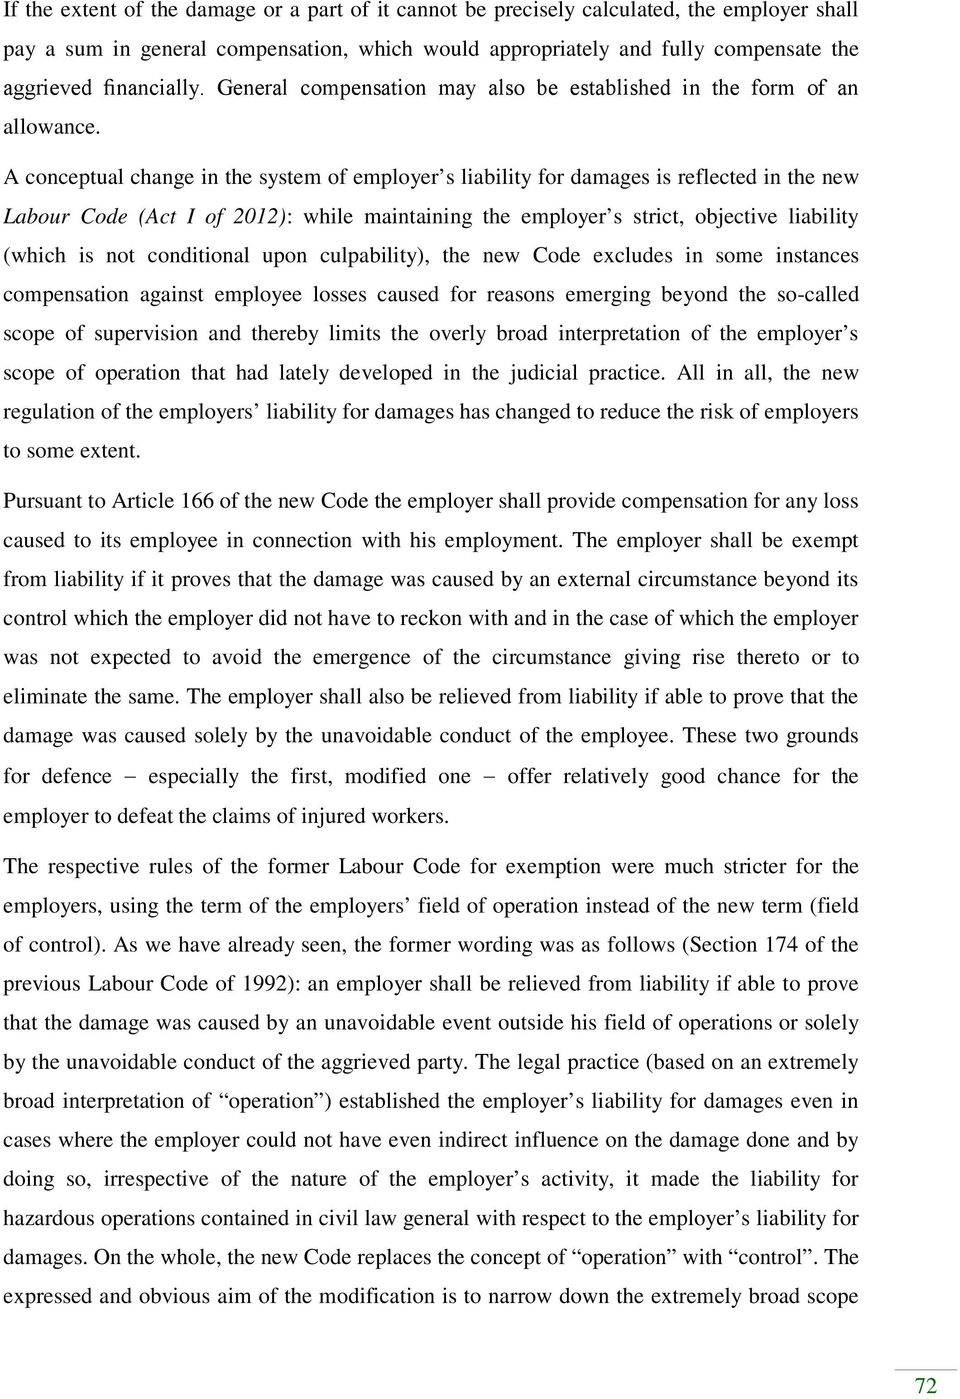 A conceptual change in the system of employer s liability for damages is reflected in the new Labour Code (Act I of 2012): while maintaining the employer s strict, objective liability (which is not